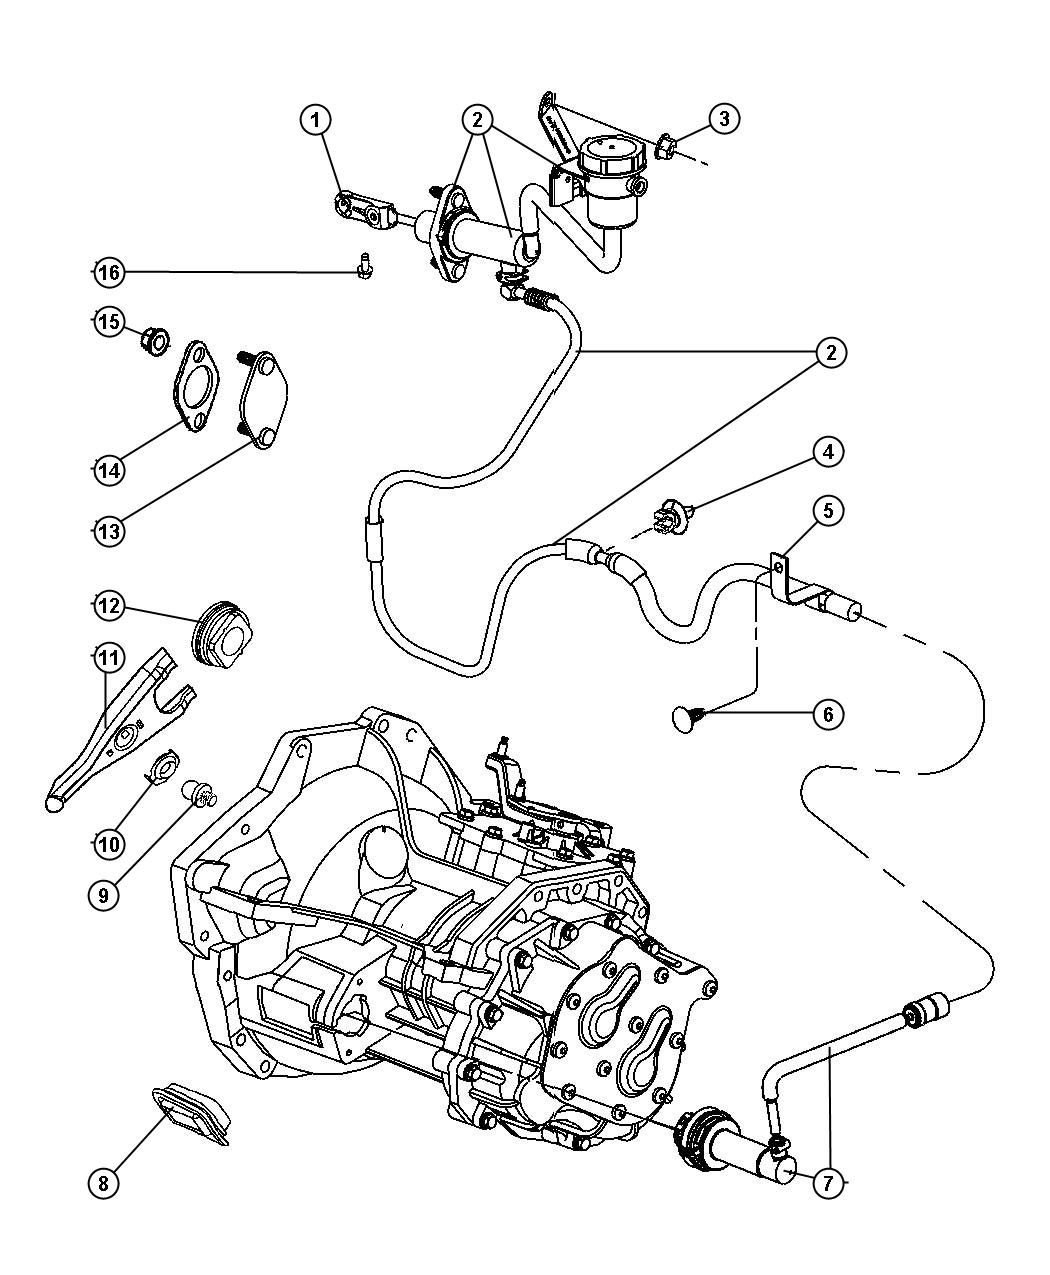 2000 dodge neon pcm wiring diagram  u2022 wiring diagram for free